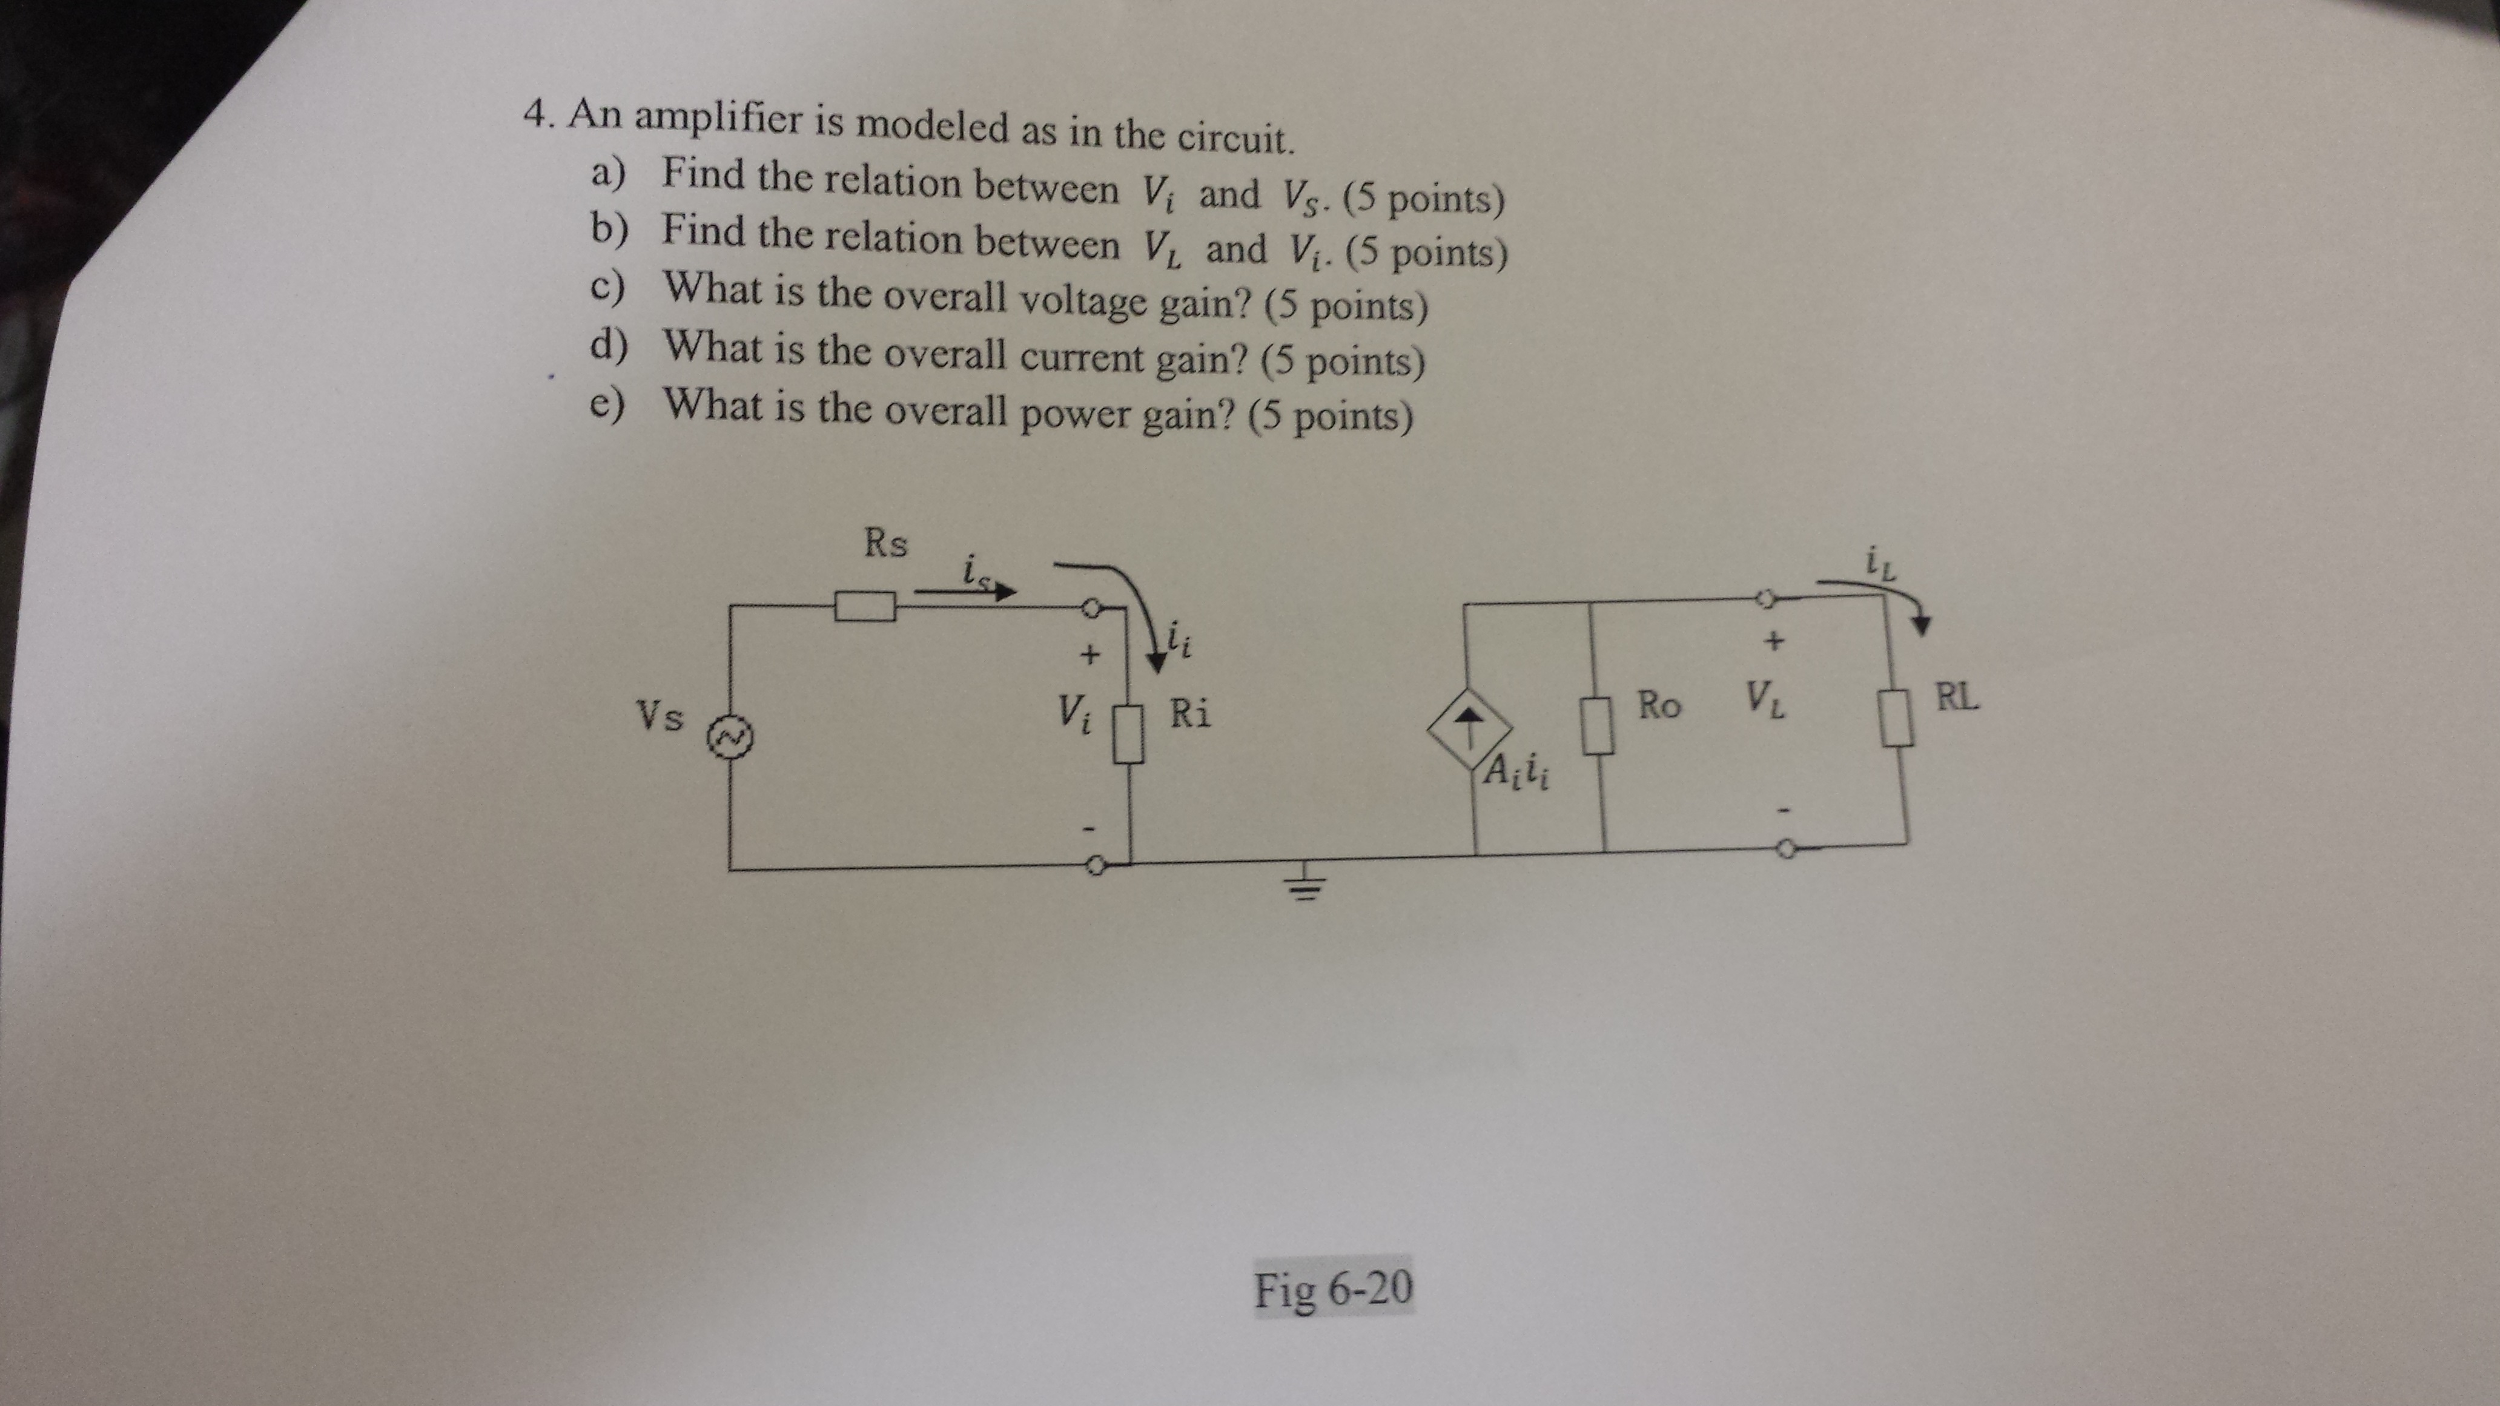 An amplifier is modeled as in the circuit. Find t